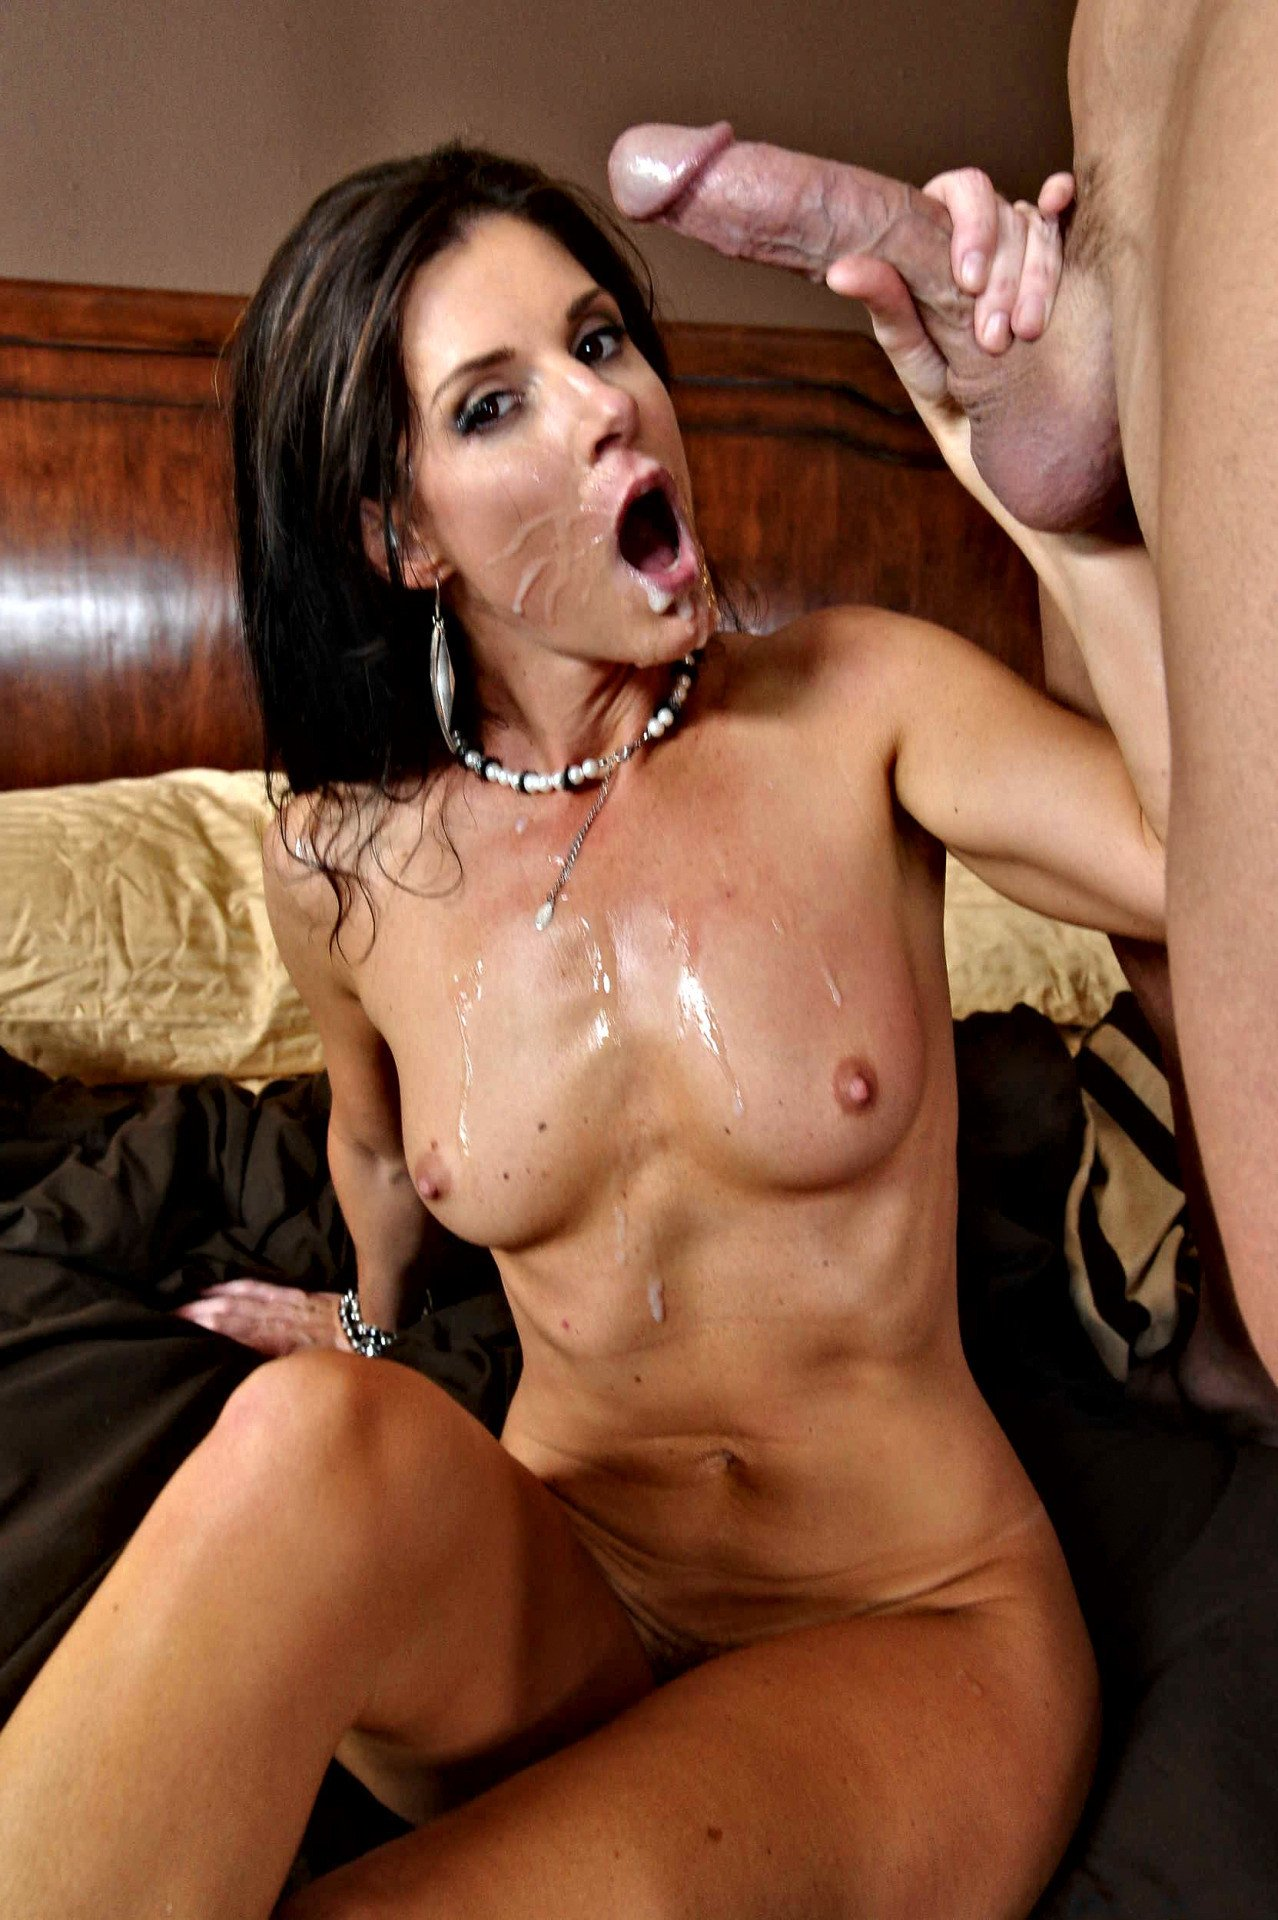 Hot milf moans loud and orgasms